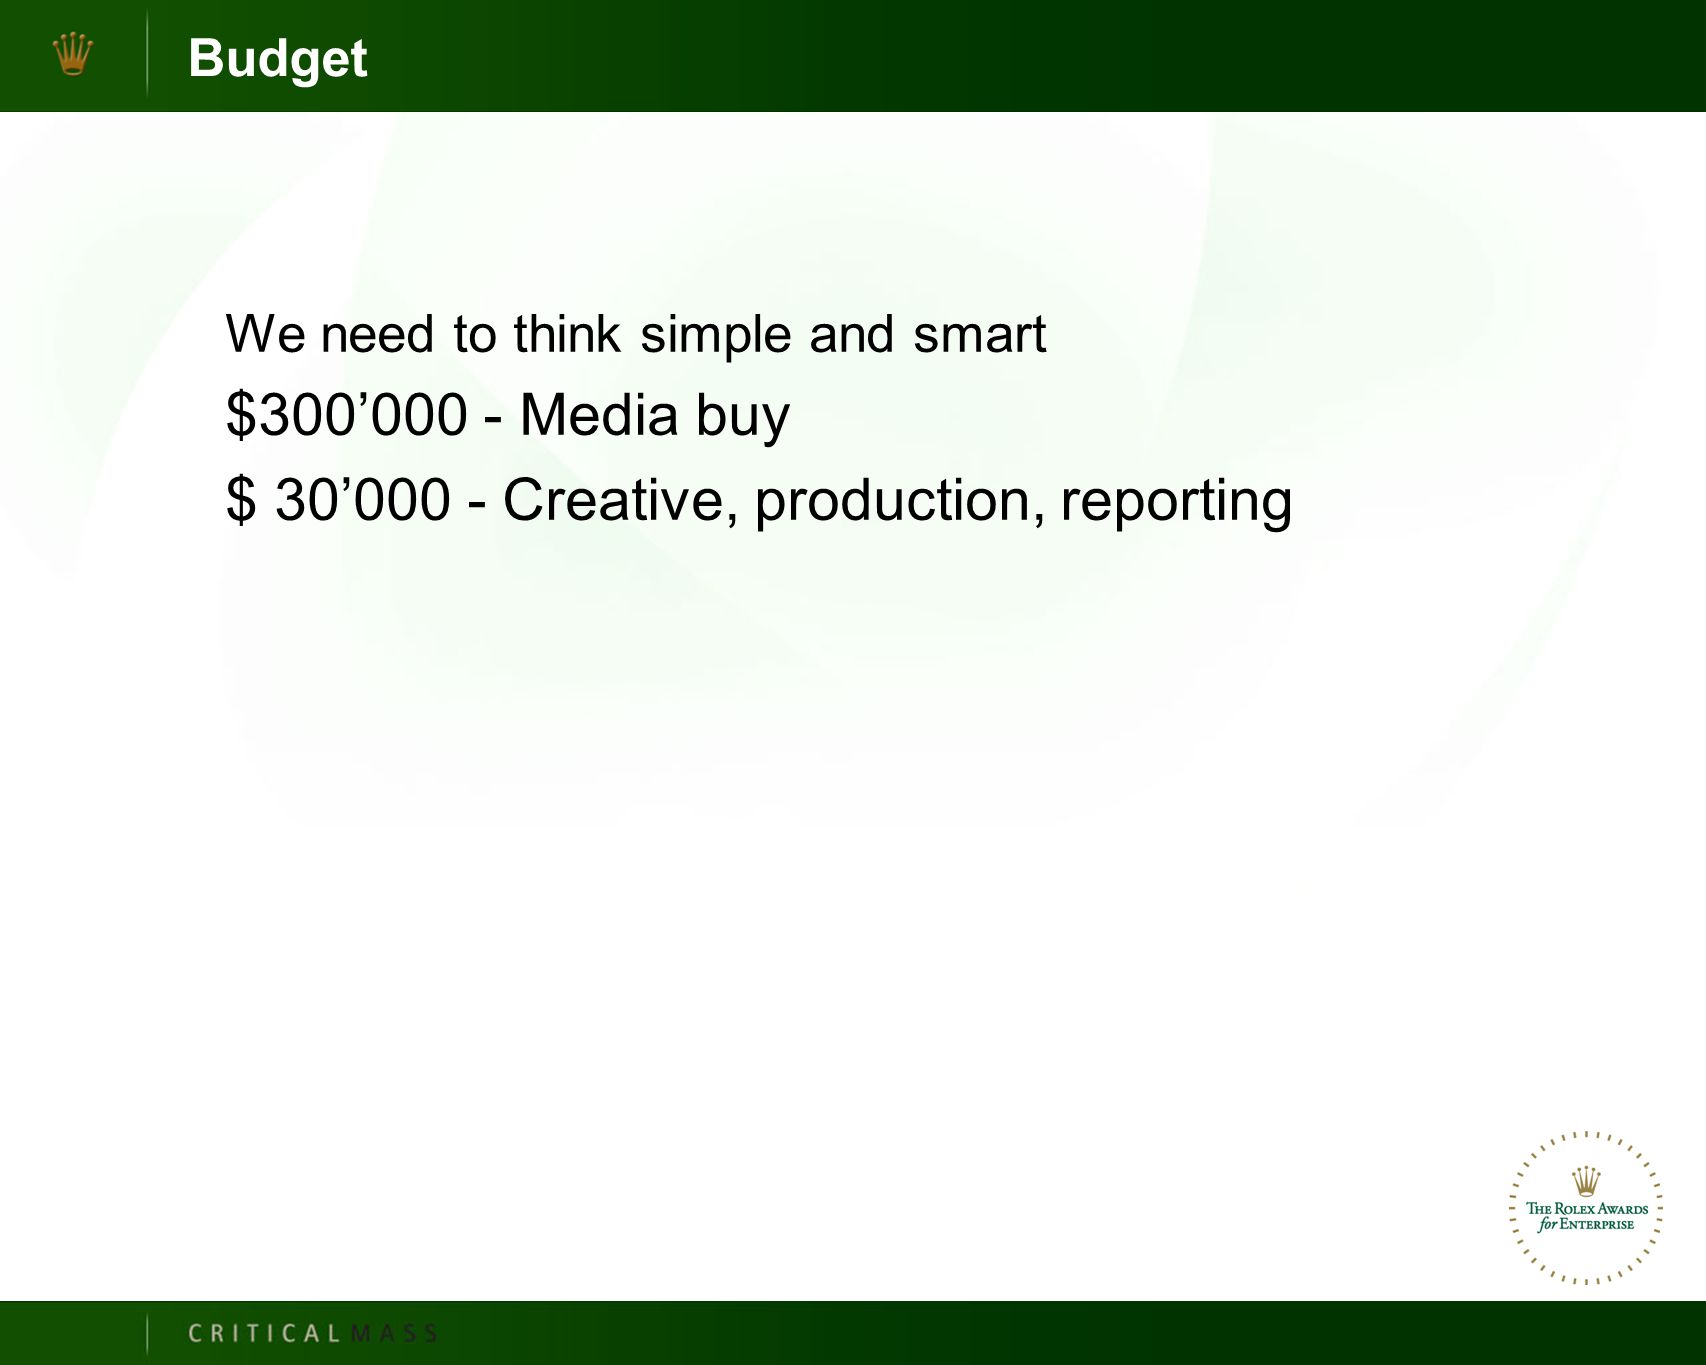 Budget We need to think simple and smart $300'000 - Media buy $ 30'000 - Creative, production, reporting